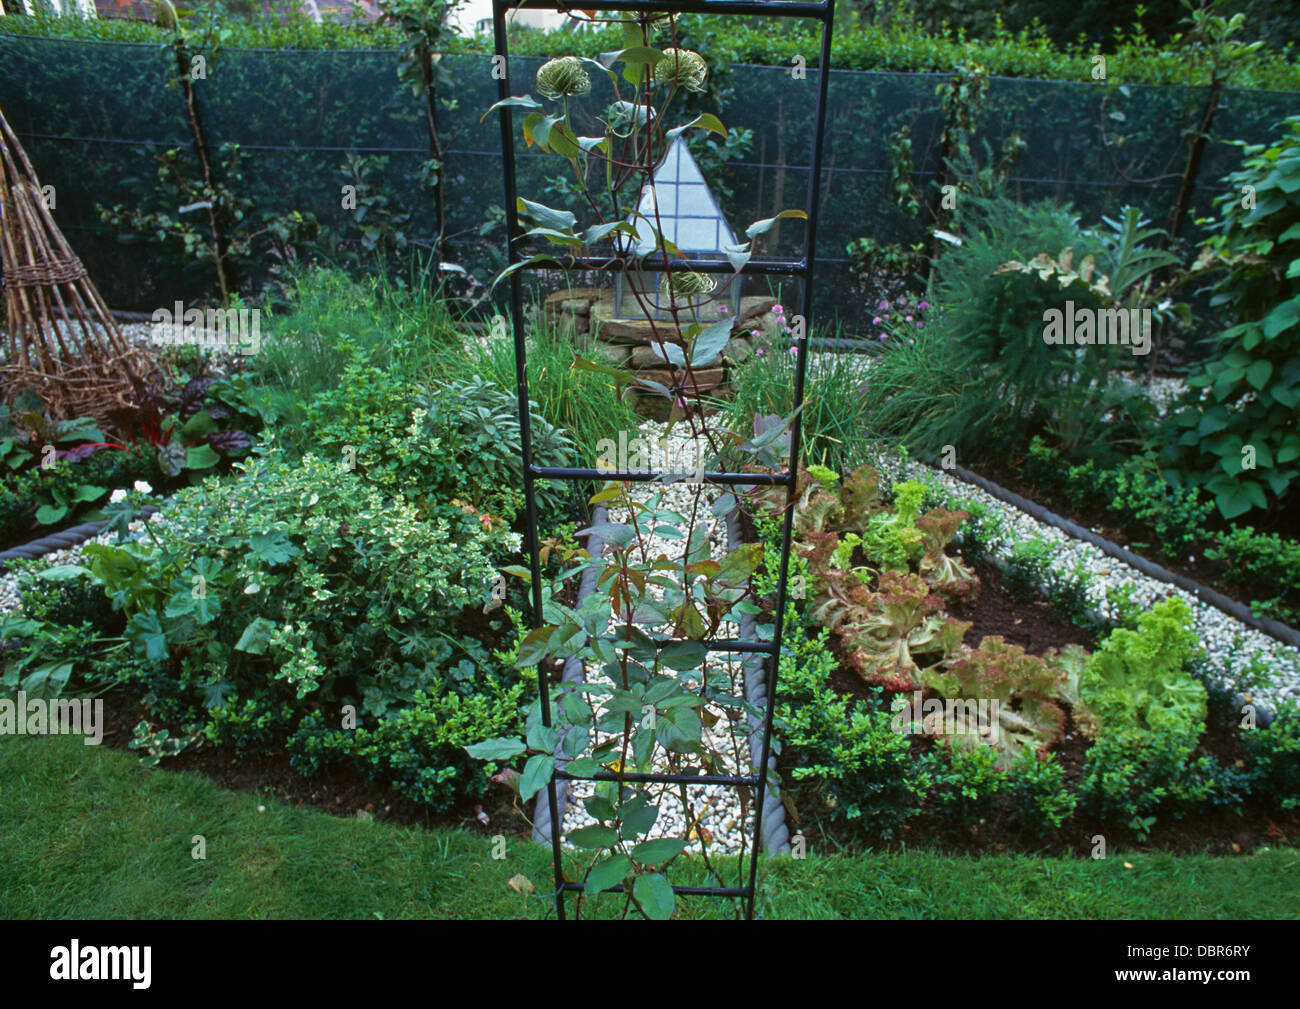 metal arch in well tended vegetable garden with rows of lettuces